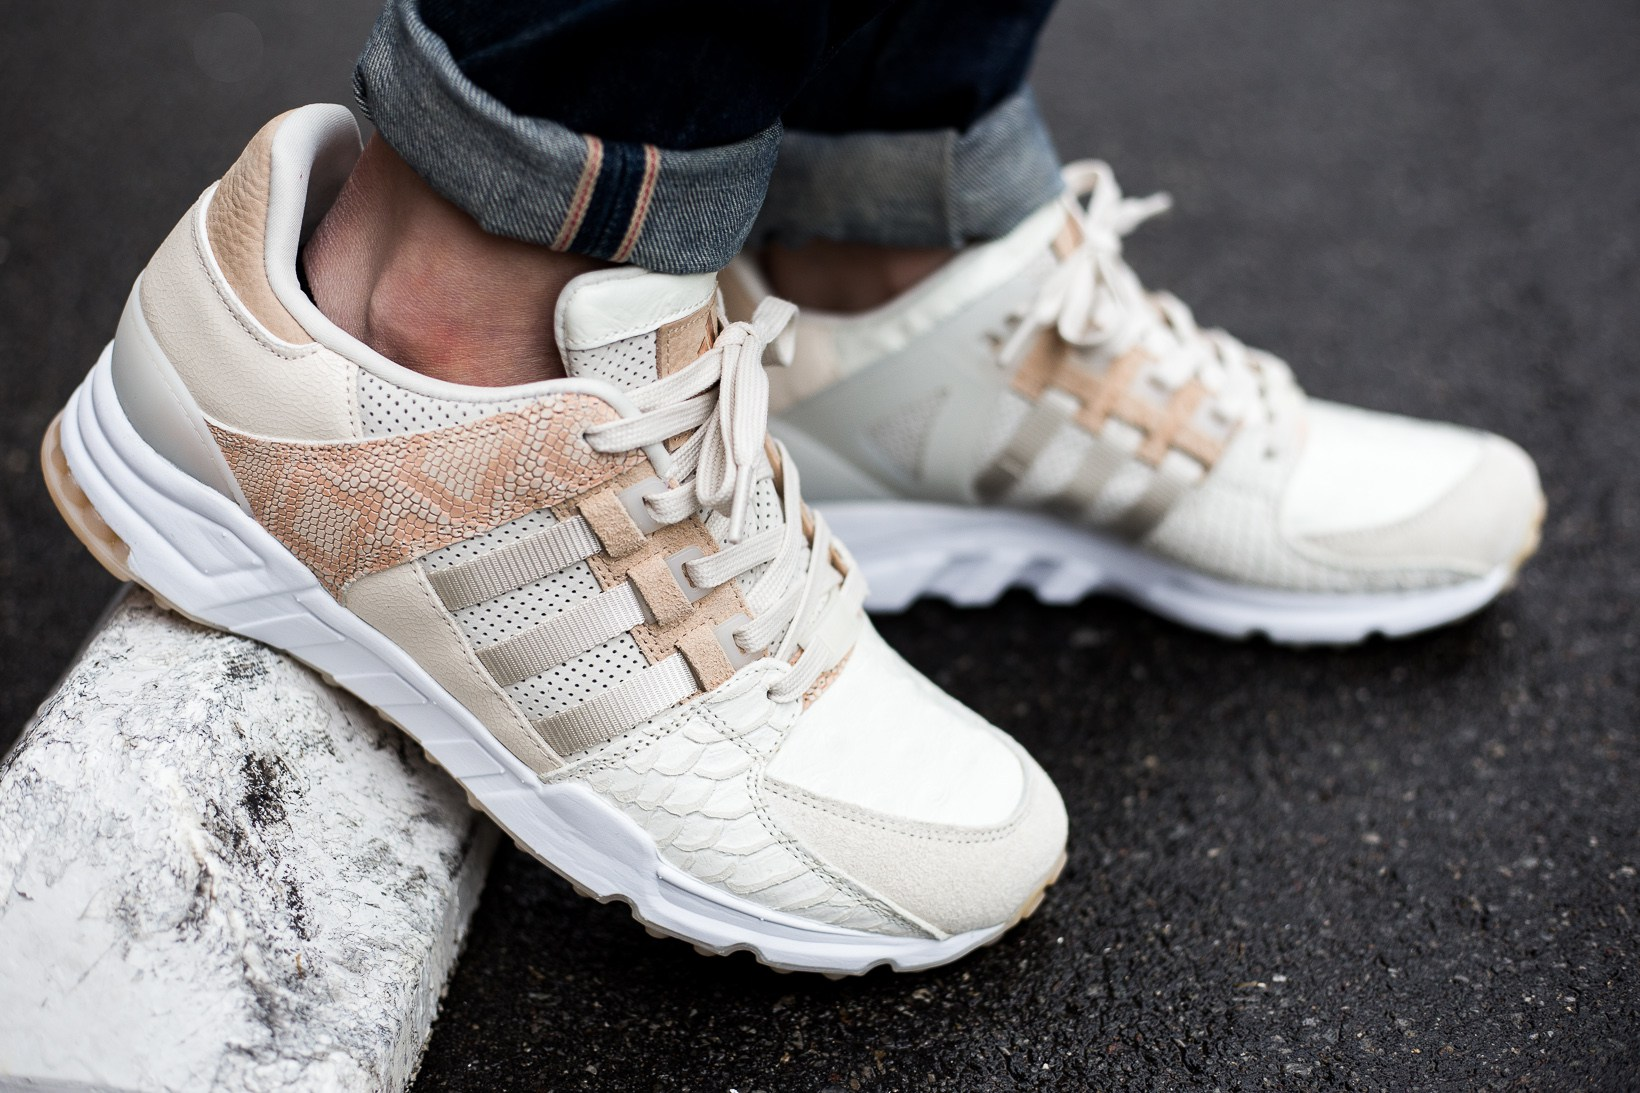 Adidas Eqt Oddity Luxe